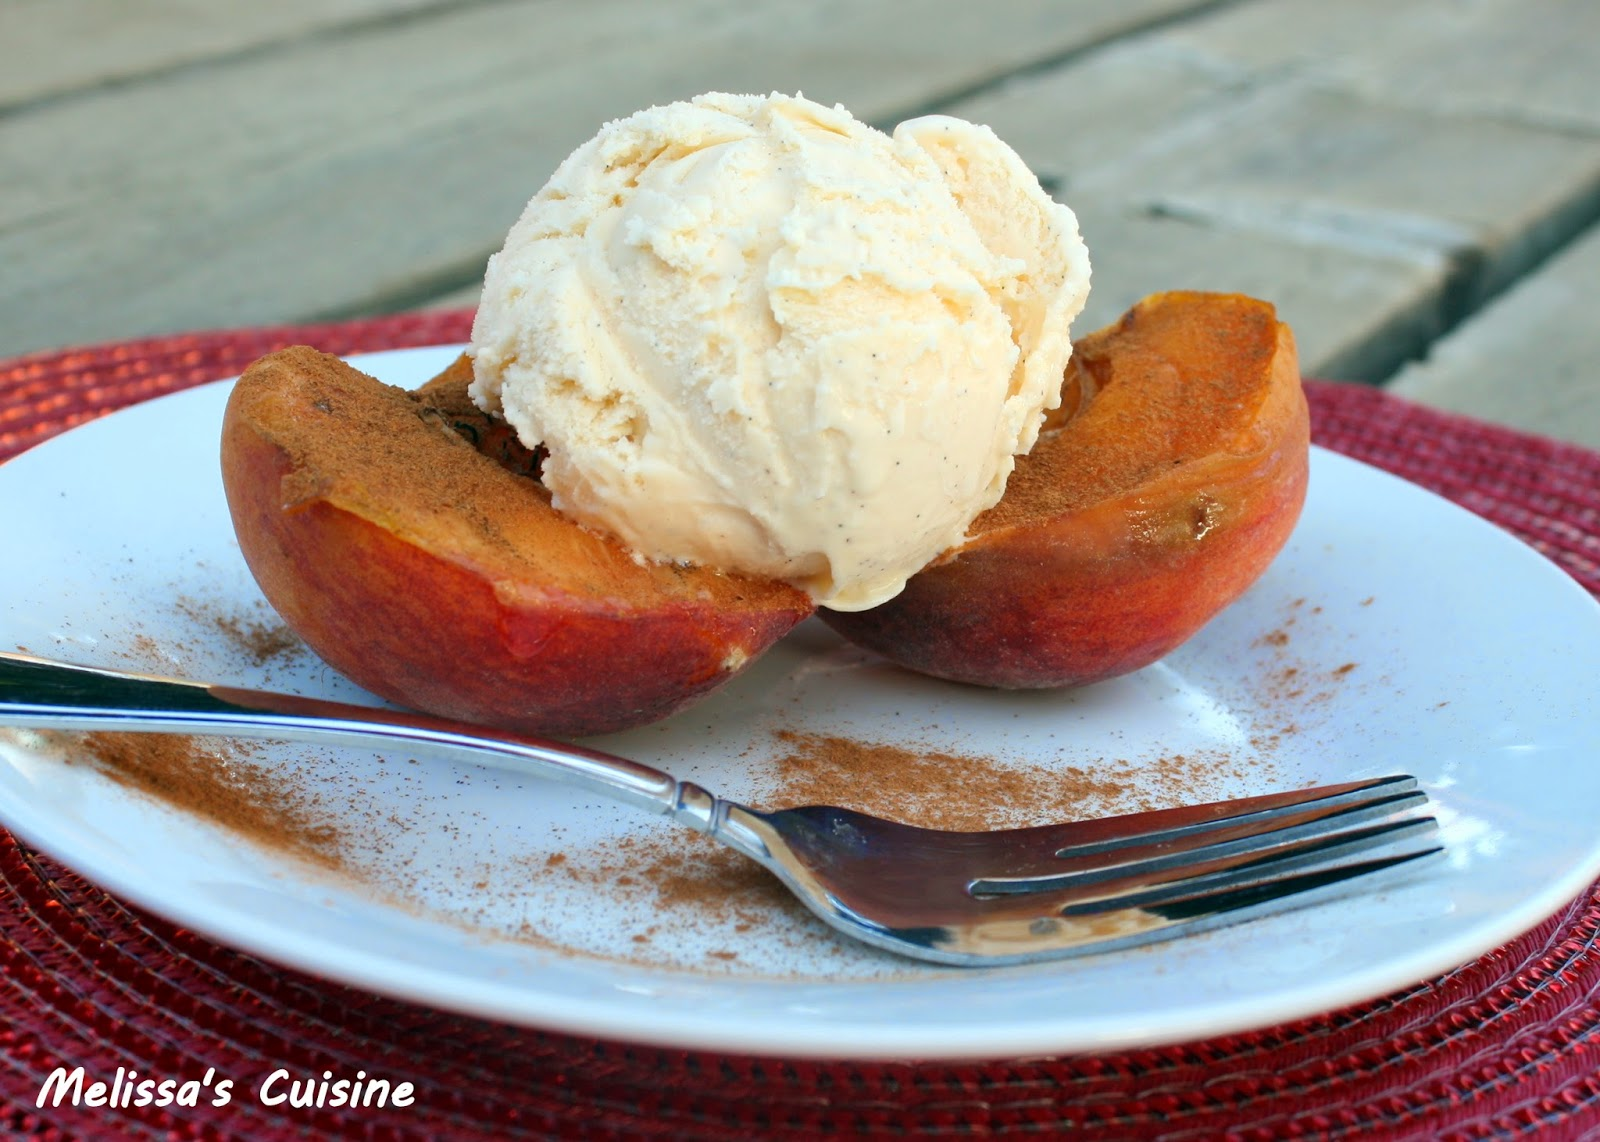 Melissa's Cuisine: Grilled Peaches